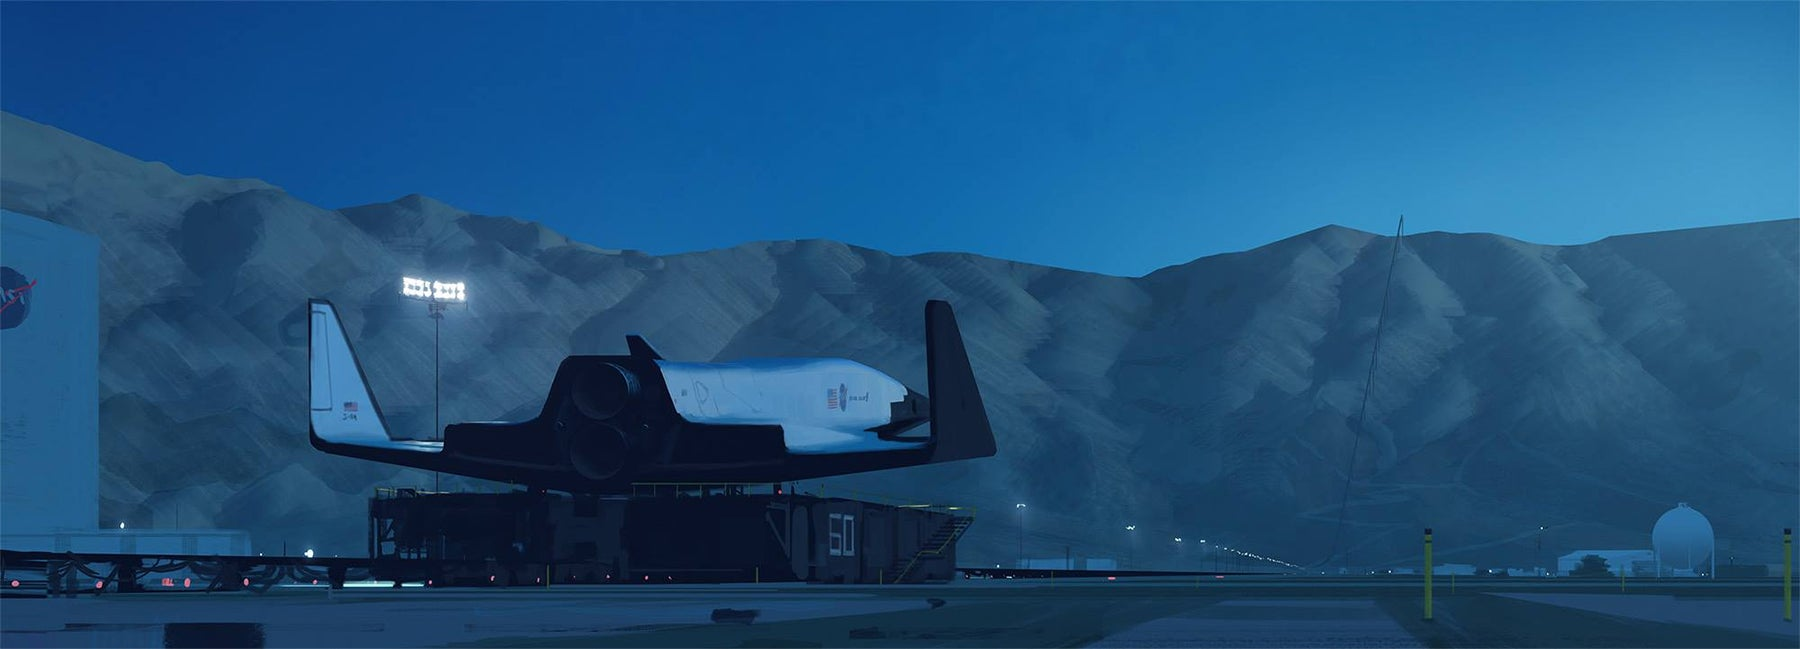 I wish this cool maglev-launched spaceplane were real